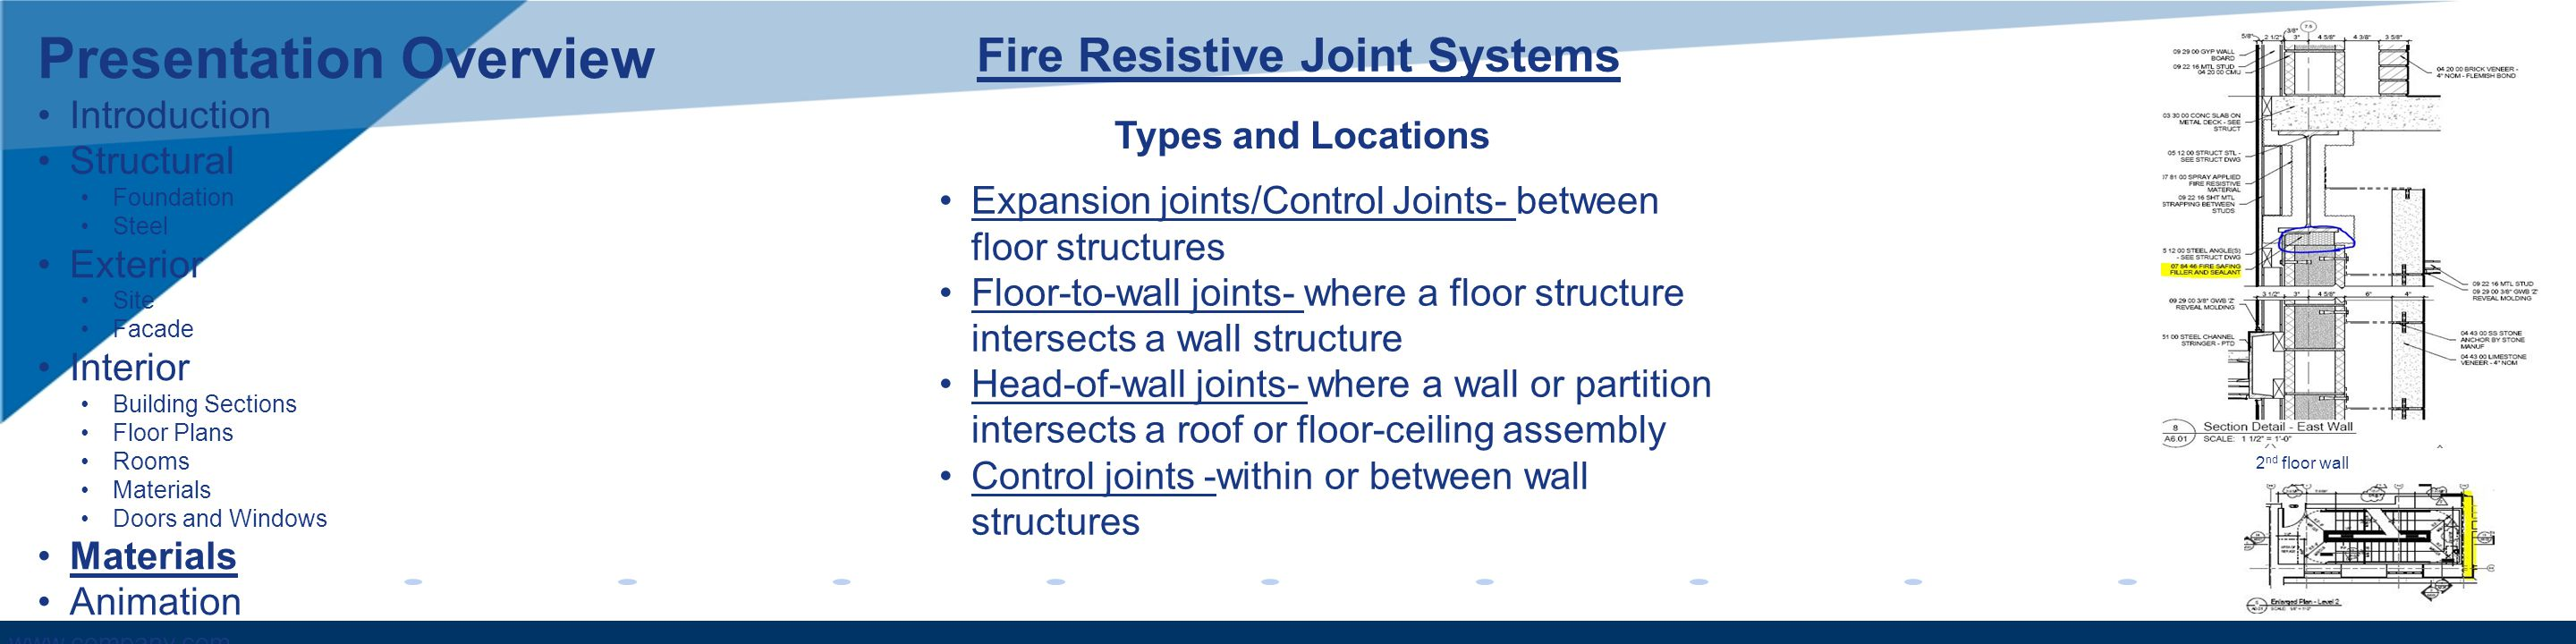 www.company.com Fire Resistive Joint Systems Expansion joints/Control Joints- between floor structures Floor-to-wall joints- where a floor structure i